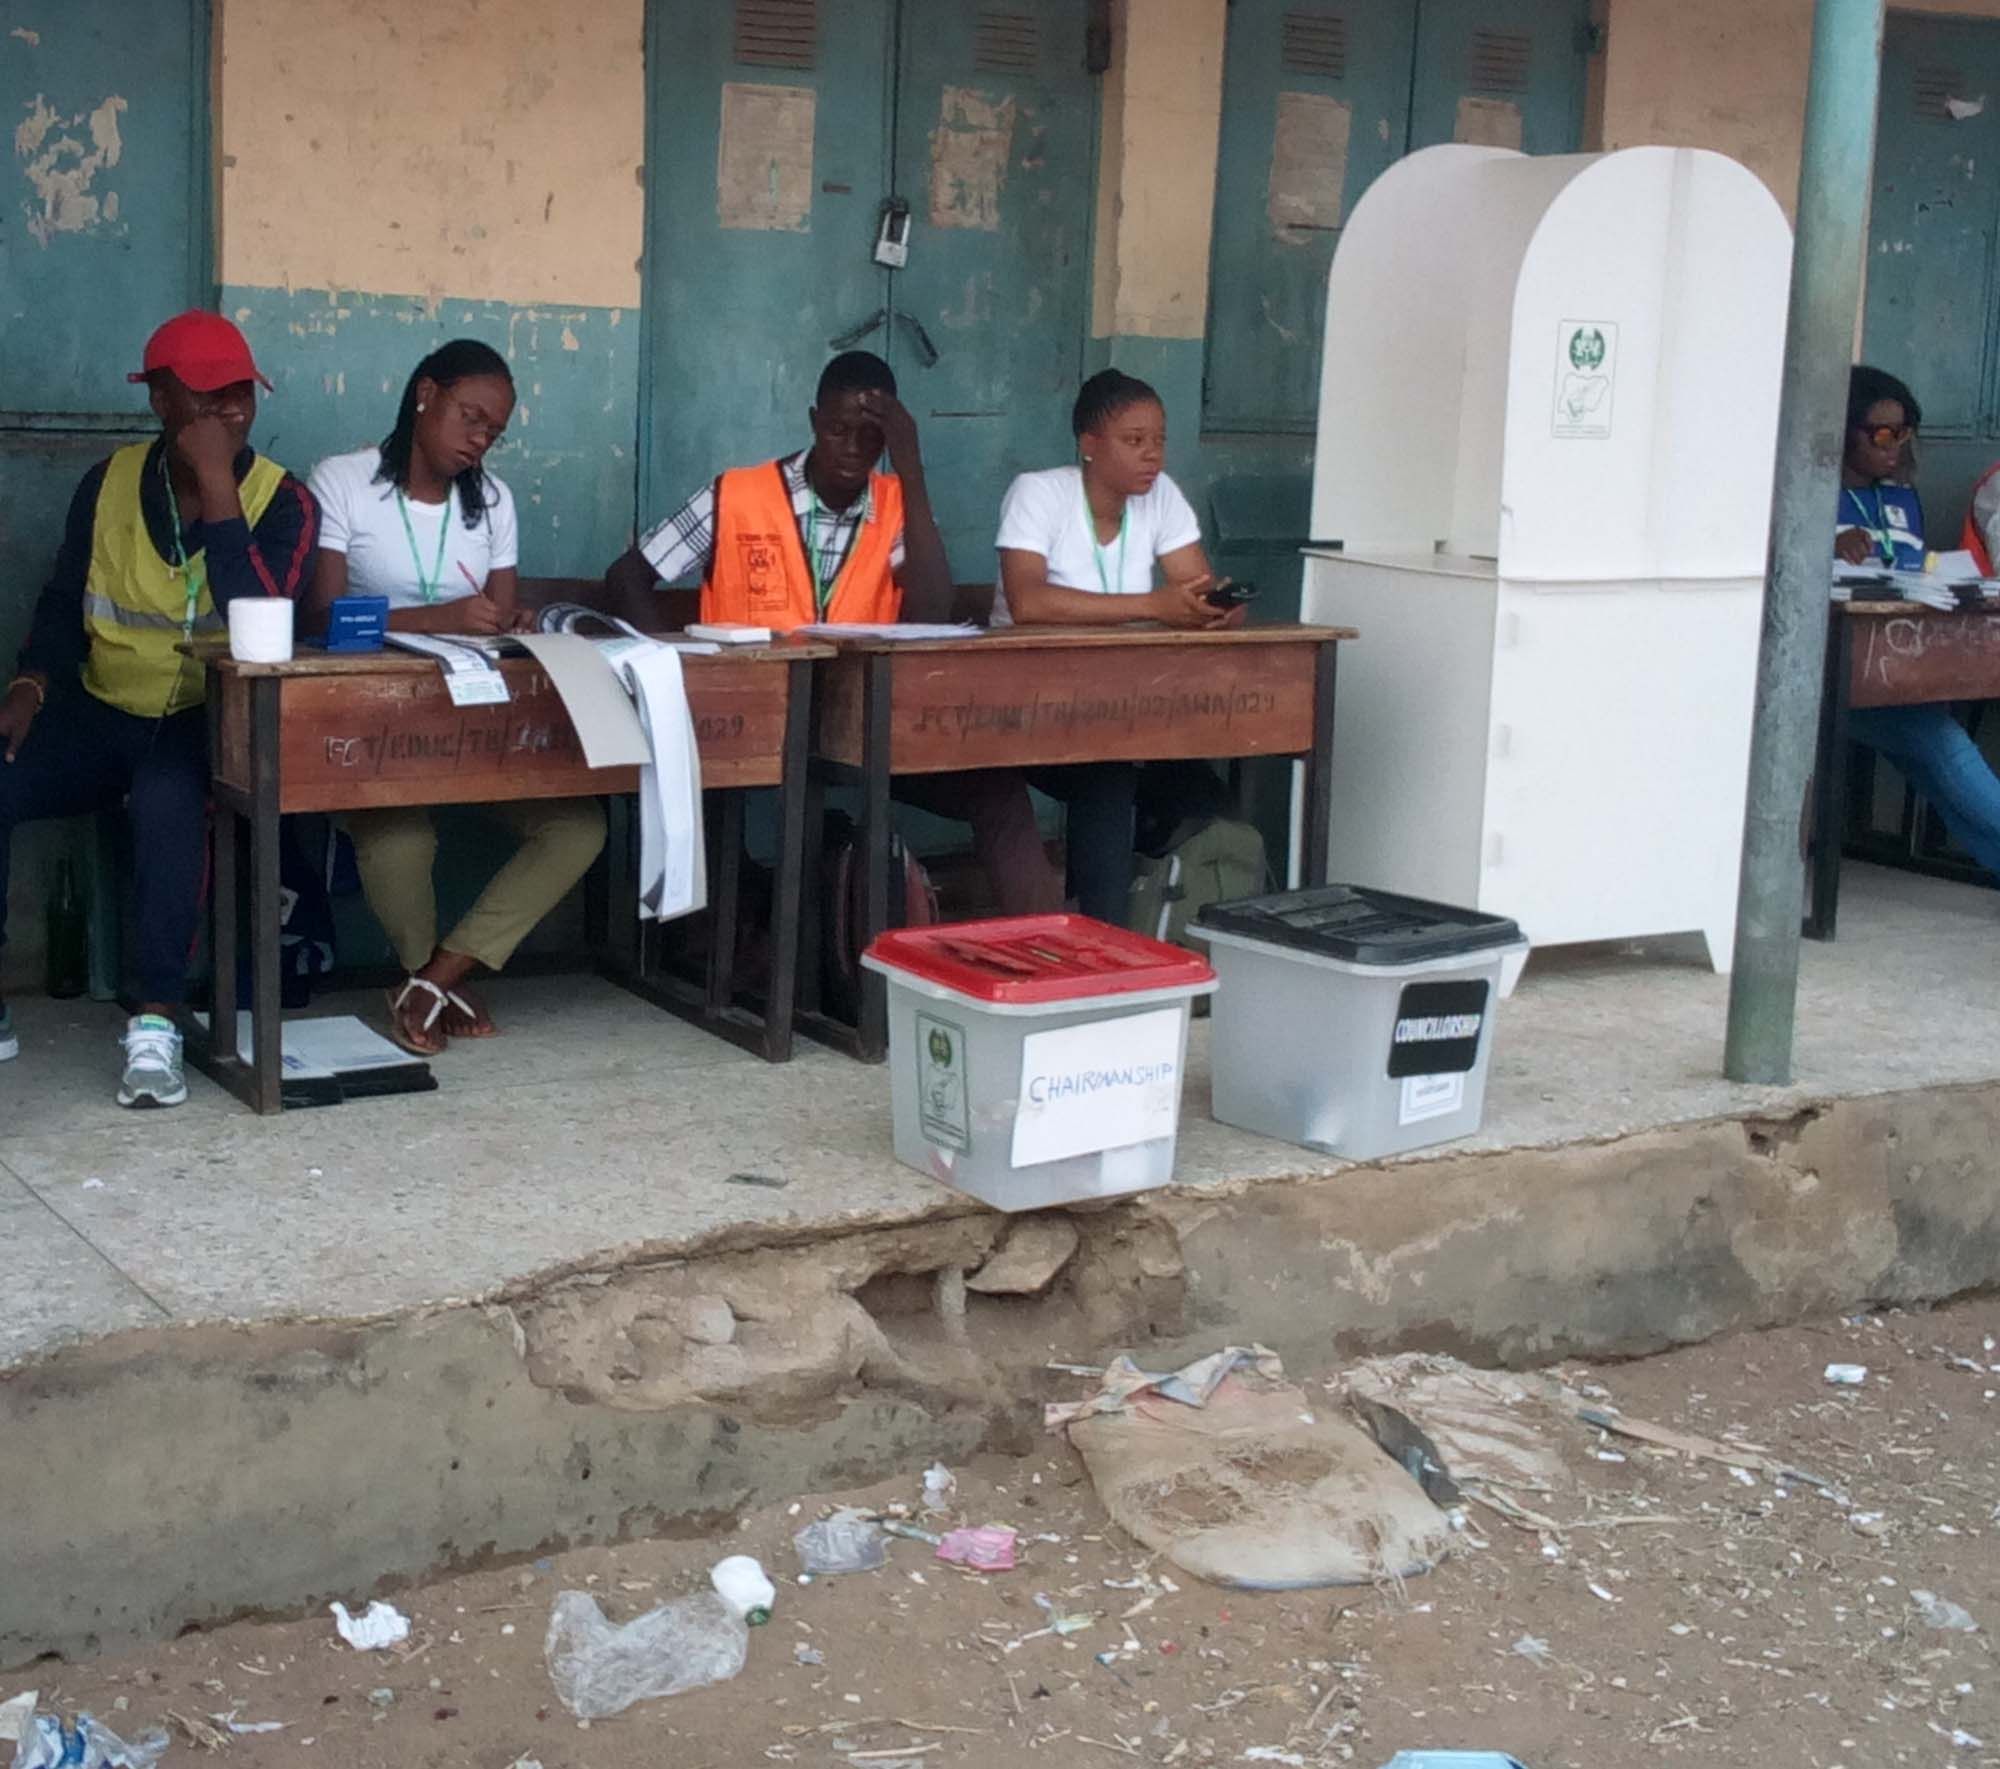 Electoral officials waiting for voters at polling unit, during the FCT Area Council in Gwagwalada, Abuja on Saturday (9/3/19). 01976/9/3/2019/ Harrison Arubu/JAU/NAN